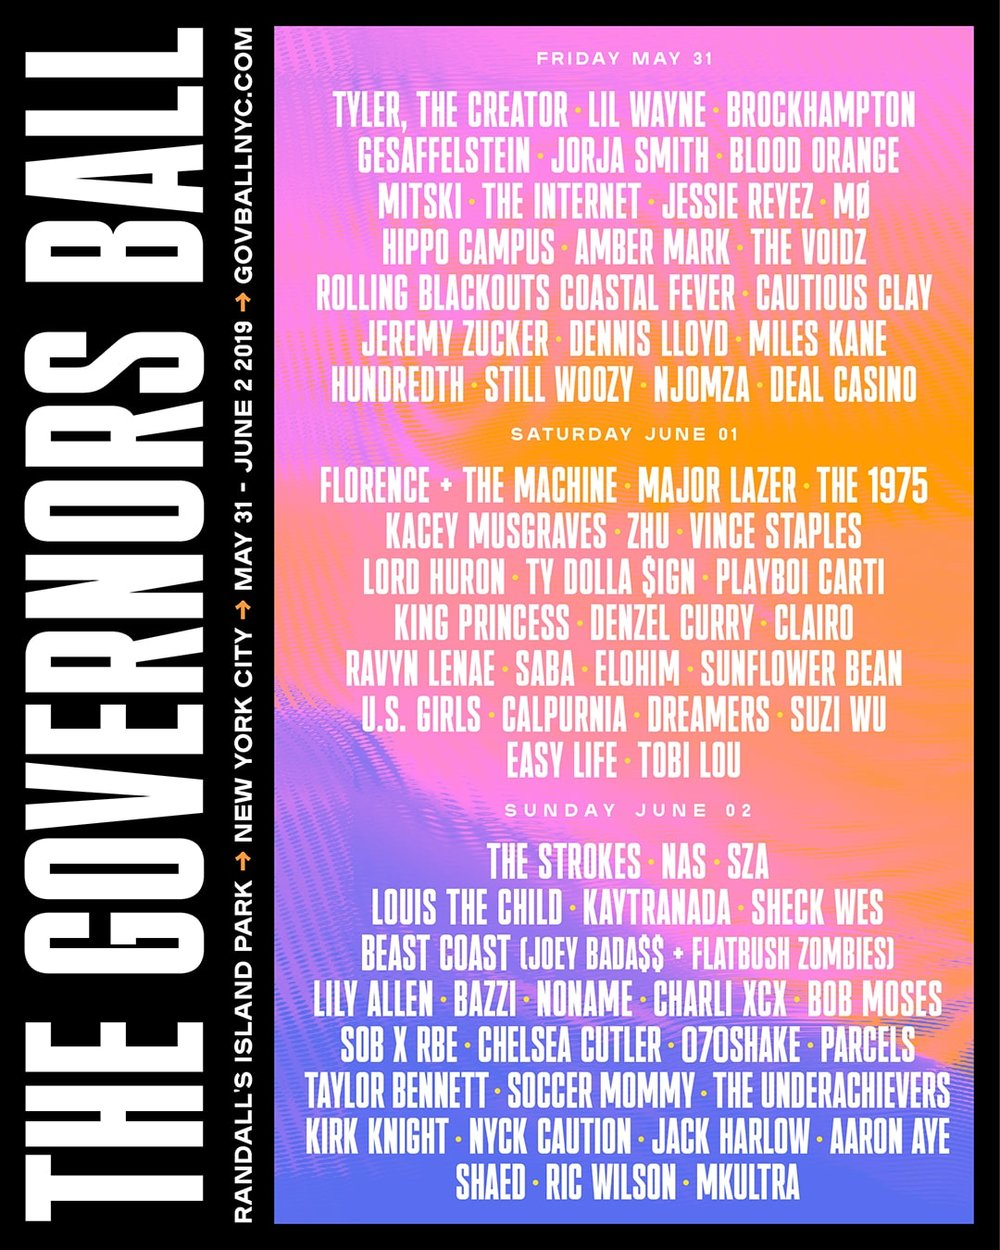 Governors Ball Music Festival 2019.jpg